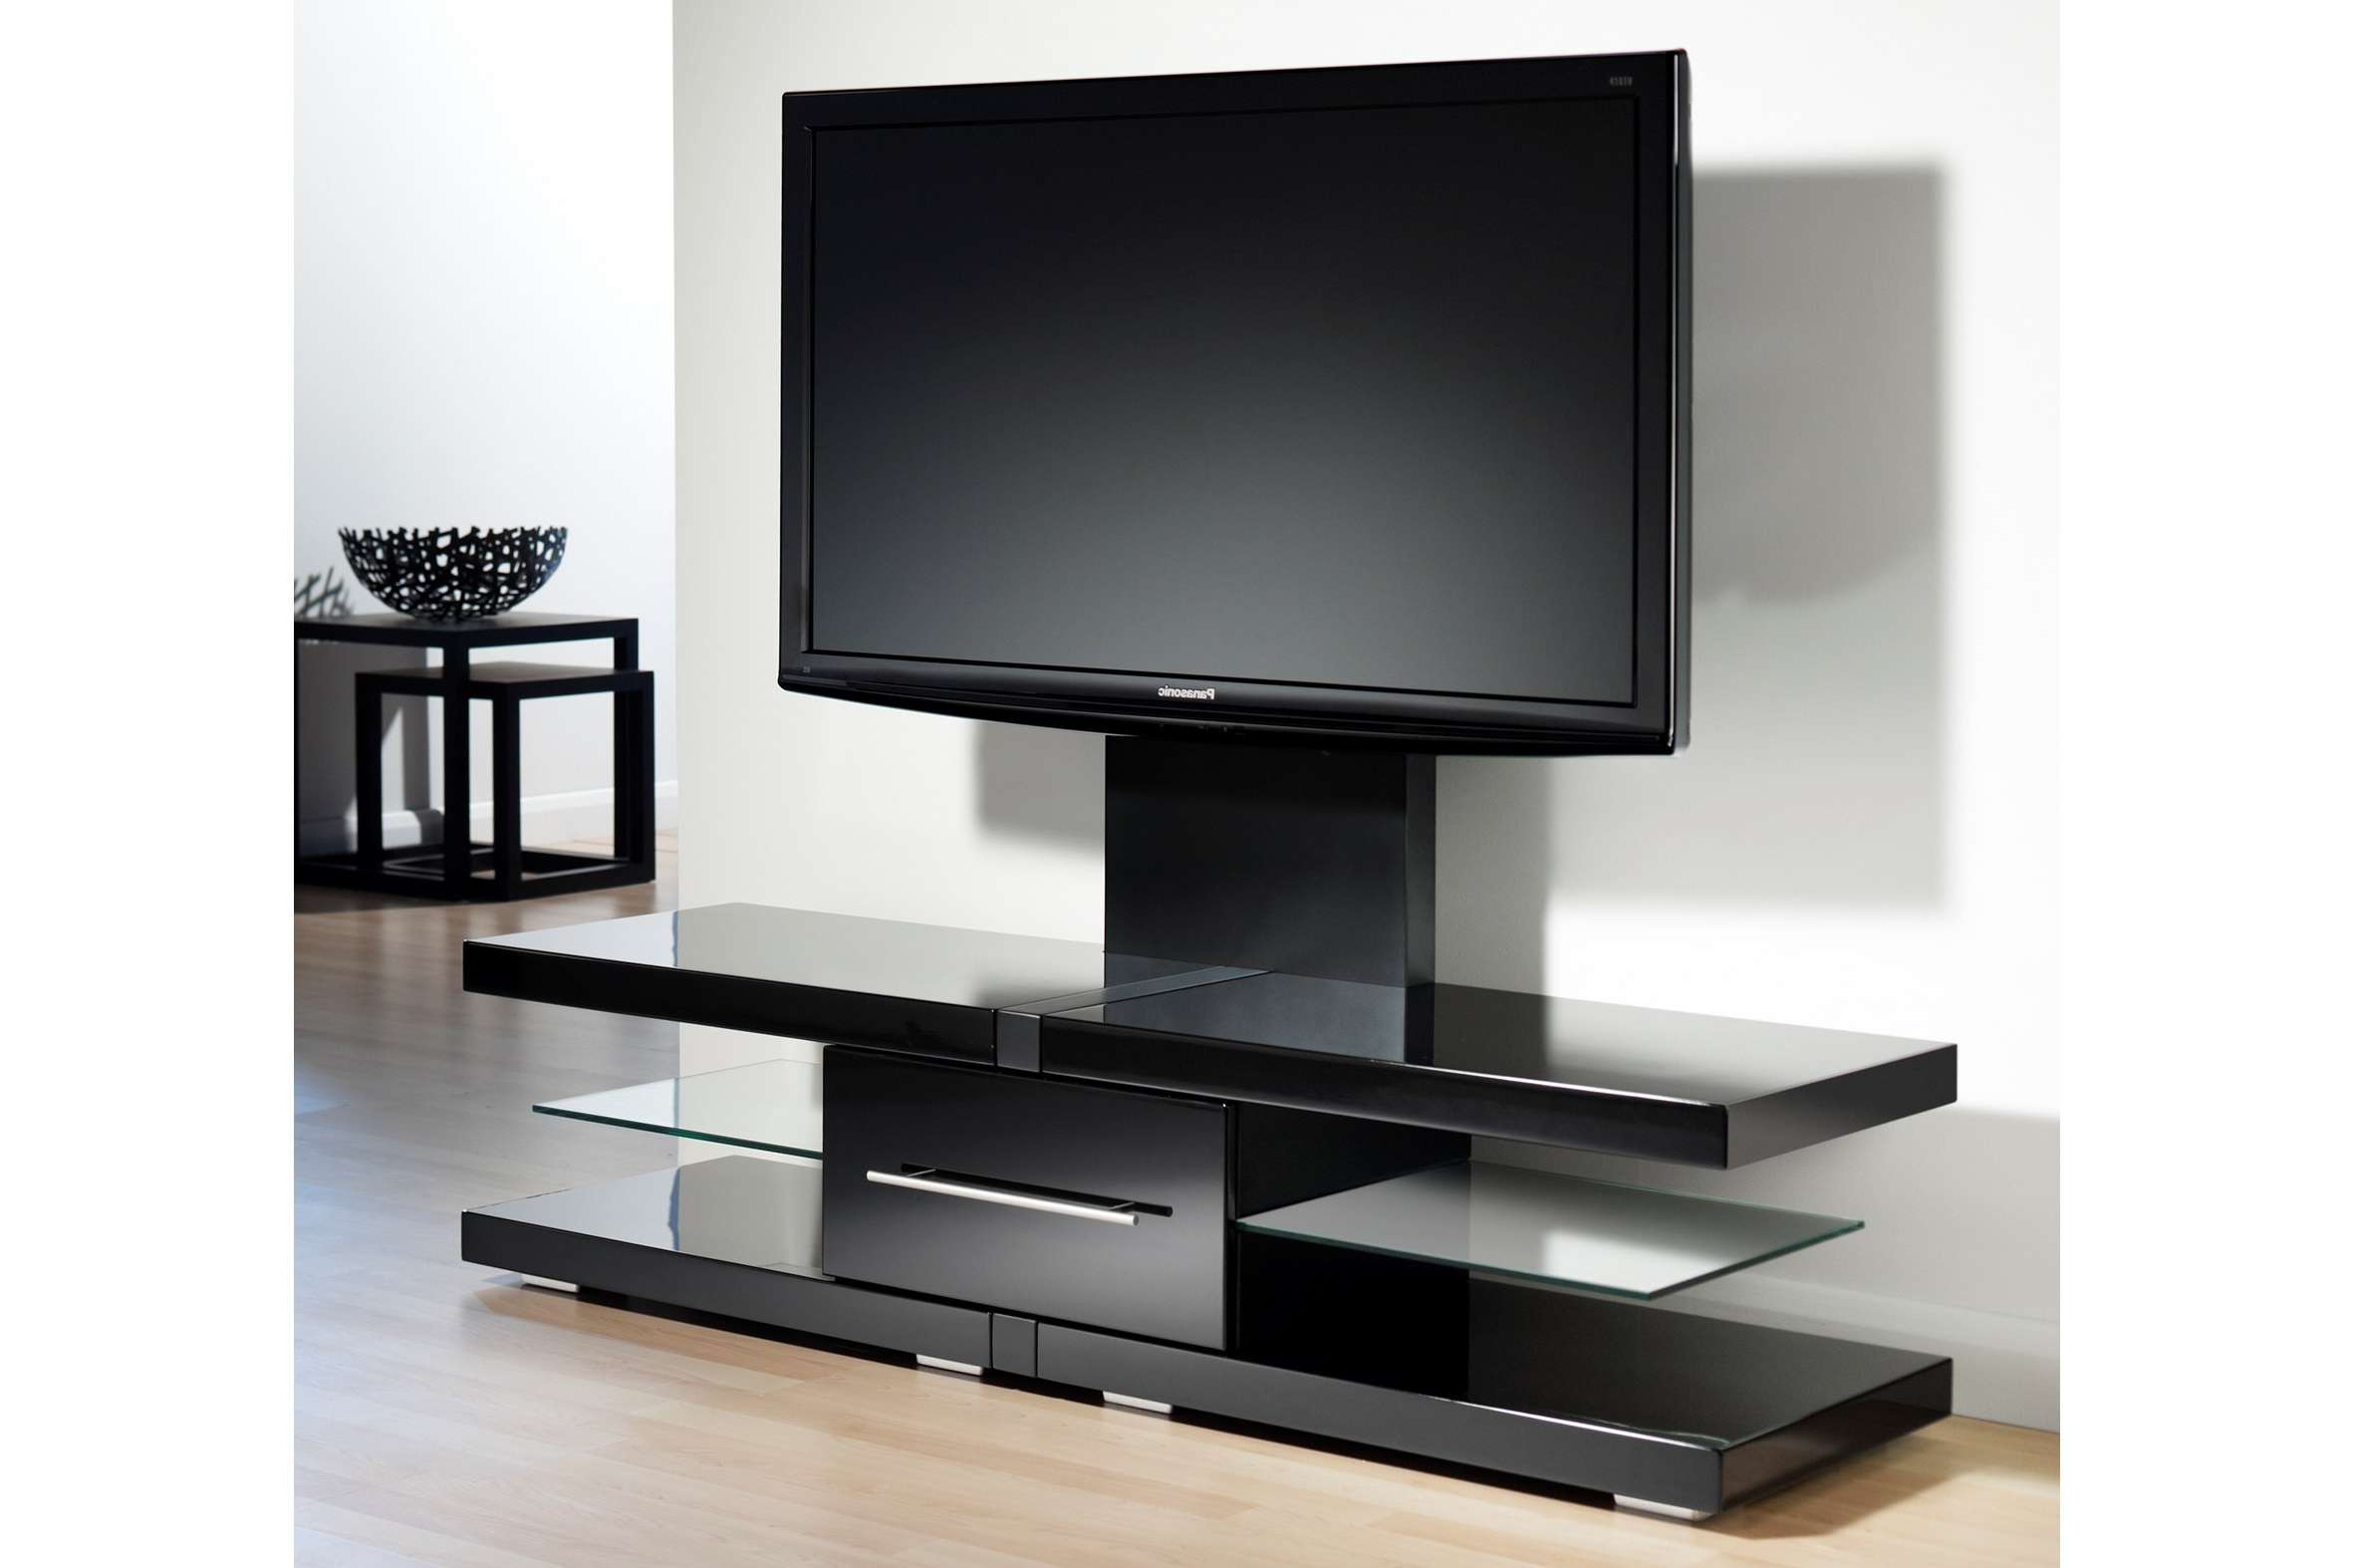 Tv Stand : 36 Sensational Tv Corner Stand With Mount Image Ideas For Corner Tv Stands With Bracket (View 16 of 20)